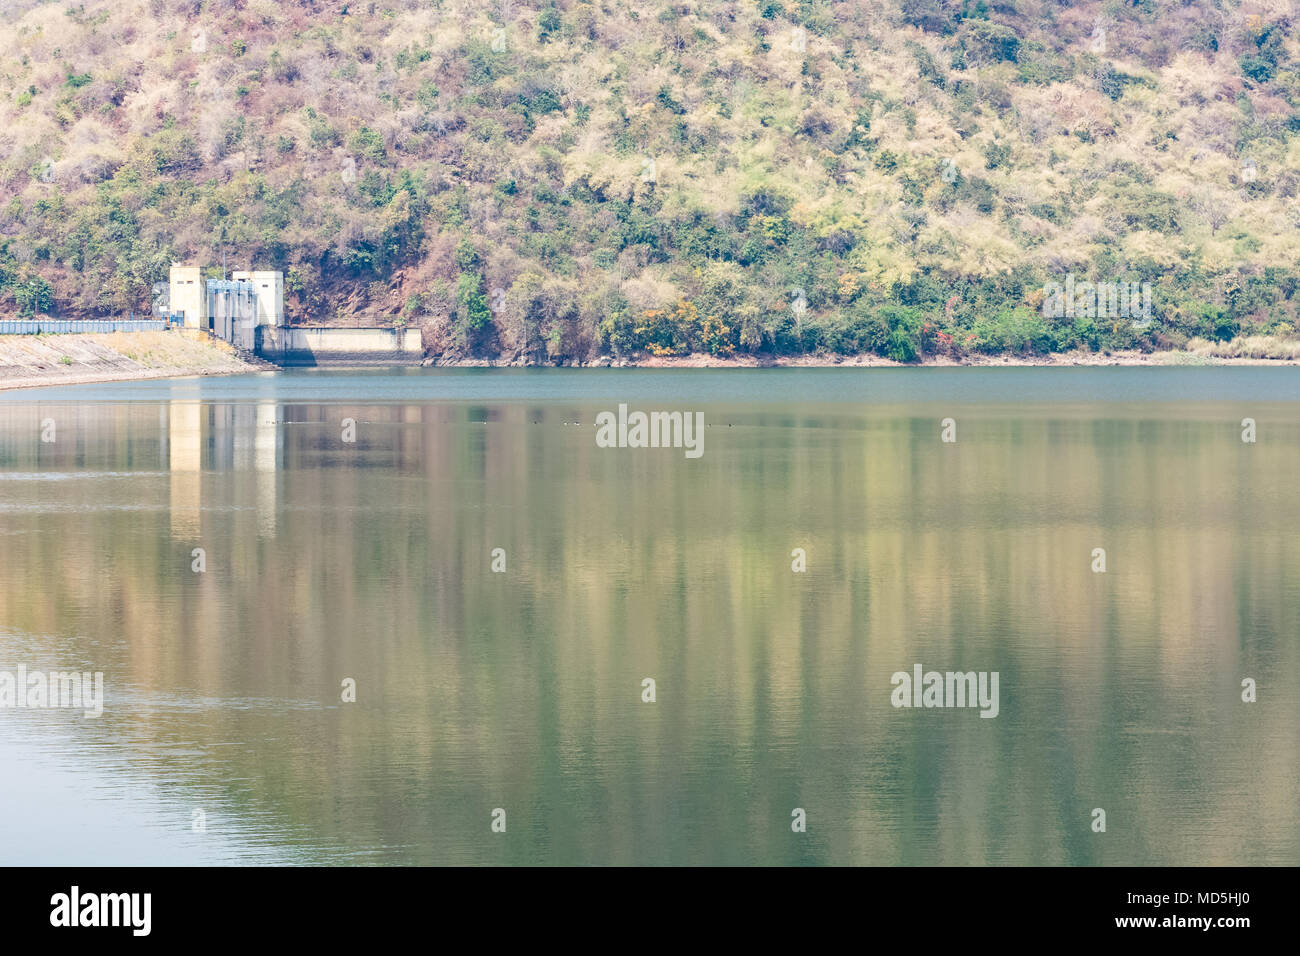 A side view of dam from a side of high side looking awesome. Stock Photo